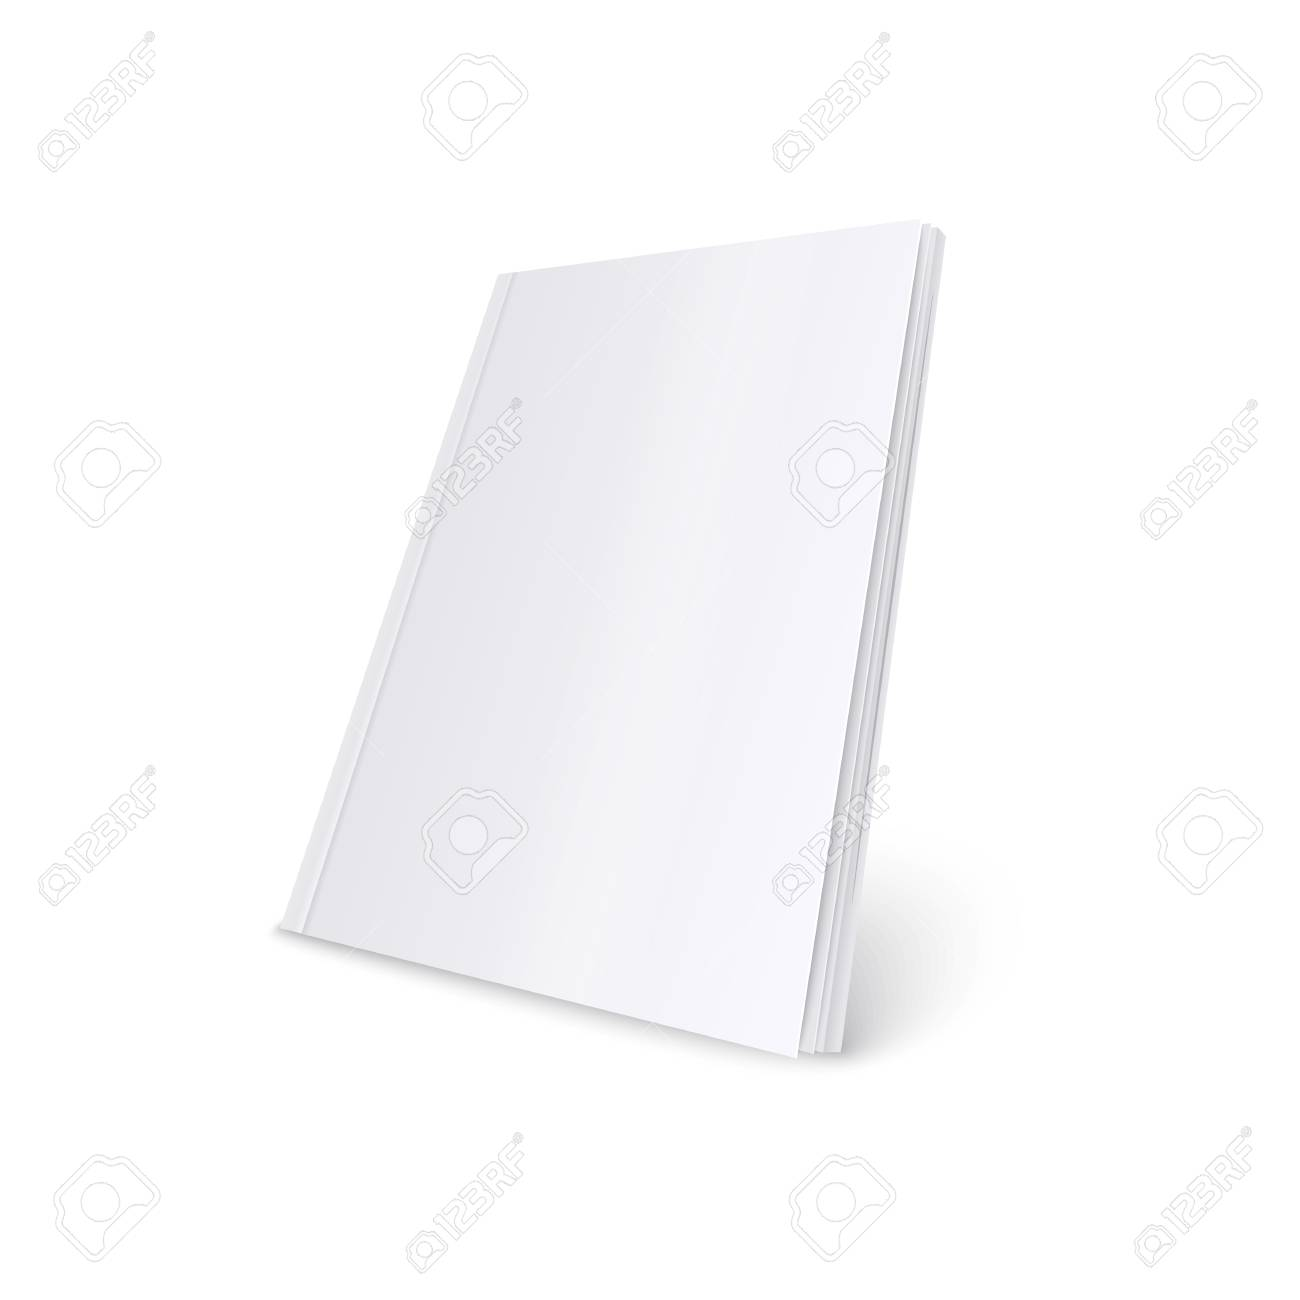 Mockup of standing blank white soft cover magazine realistic style, vector illustration isolated on white background. 3d template of paperback book or brochure or catalog in three quarters view - 128170713